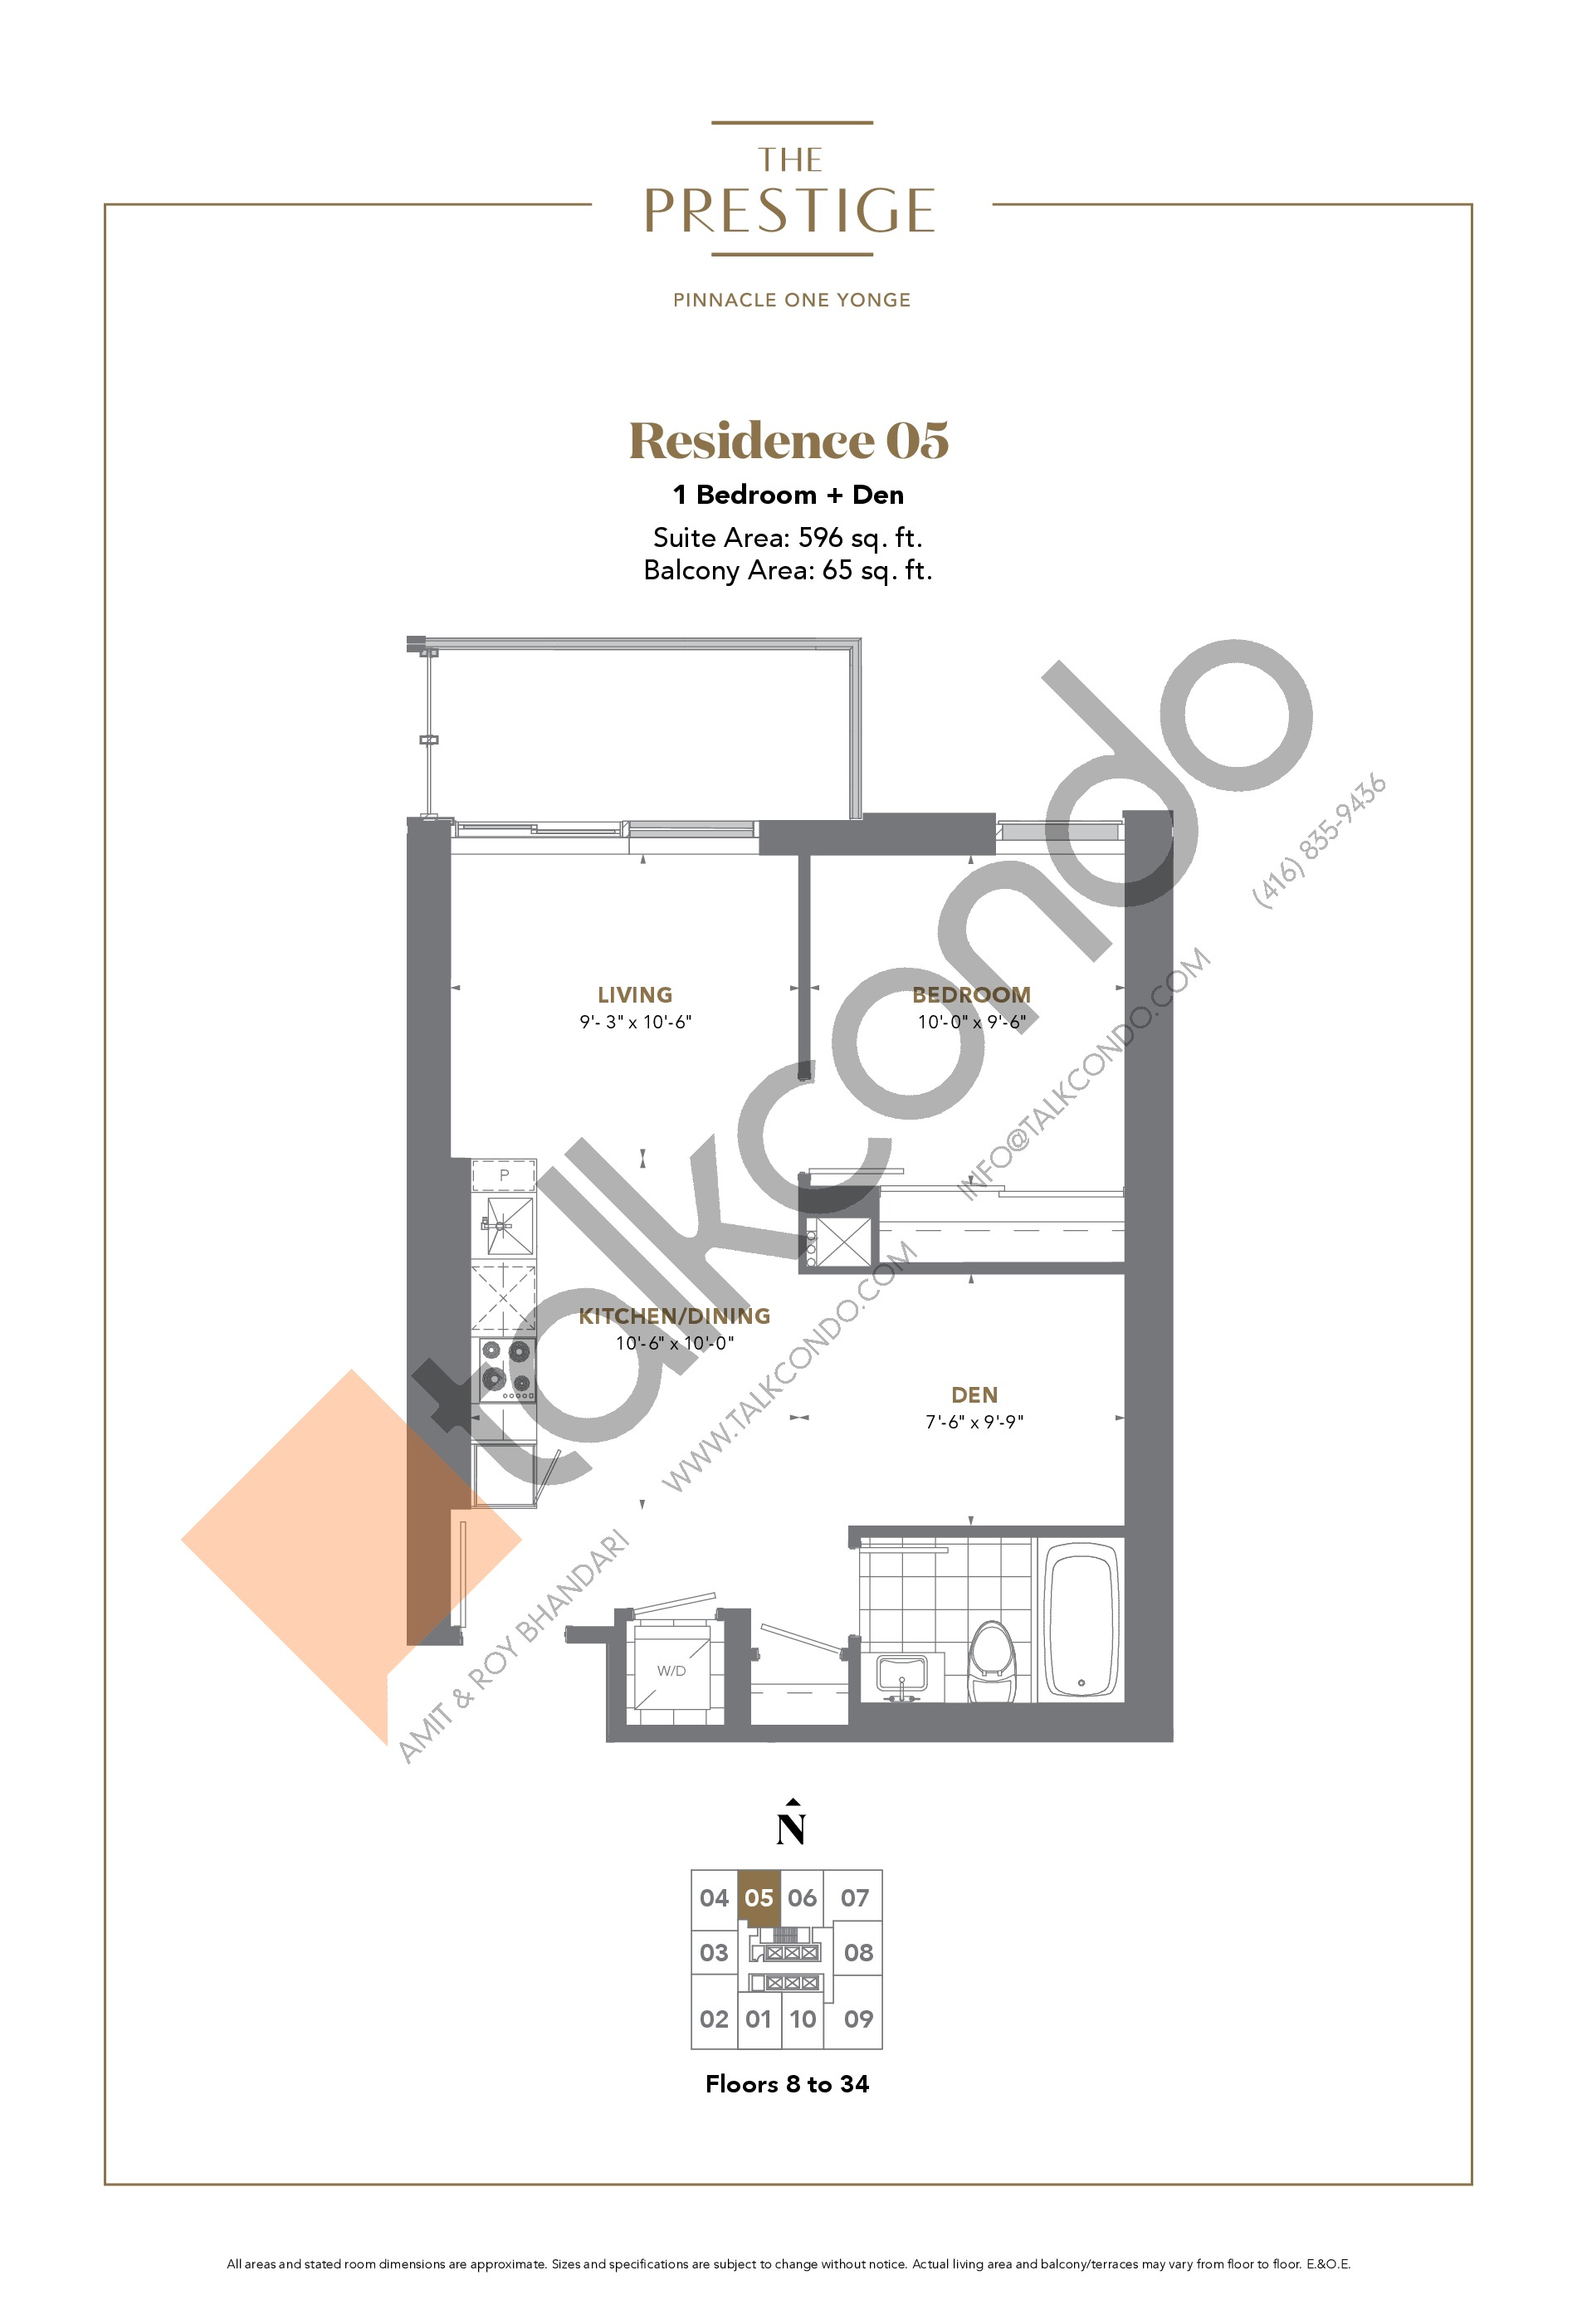 Residence 05 Floor Plan at The Prestige Condos at Pinnacle One Yonge - 596 sq.ft